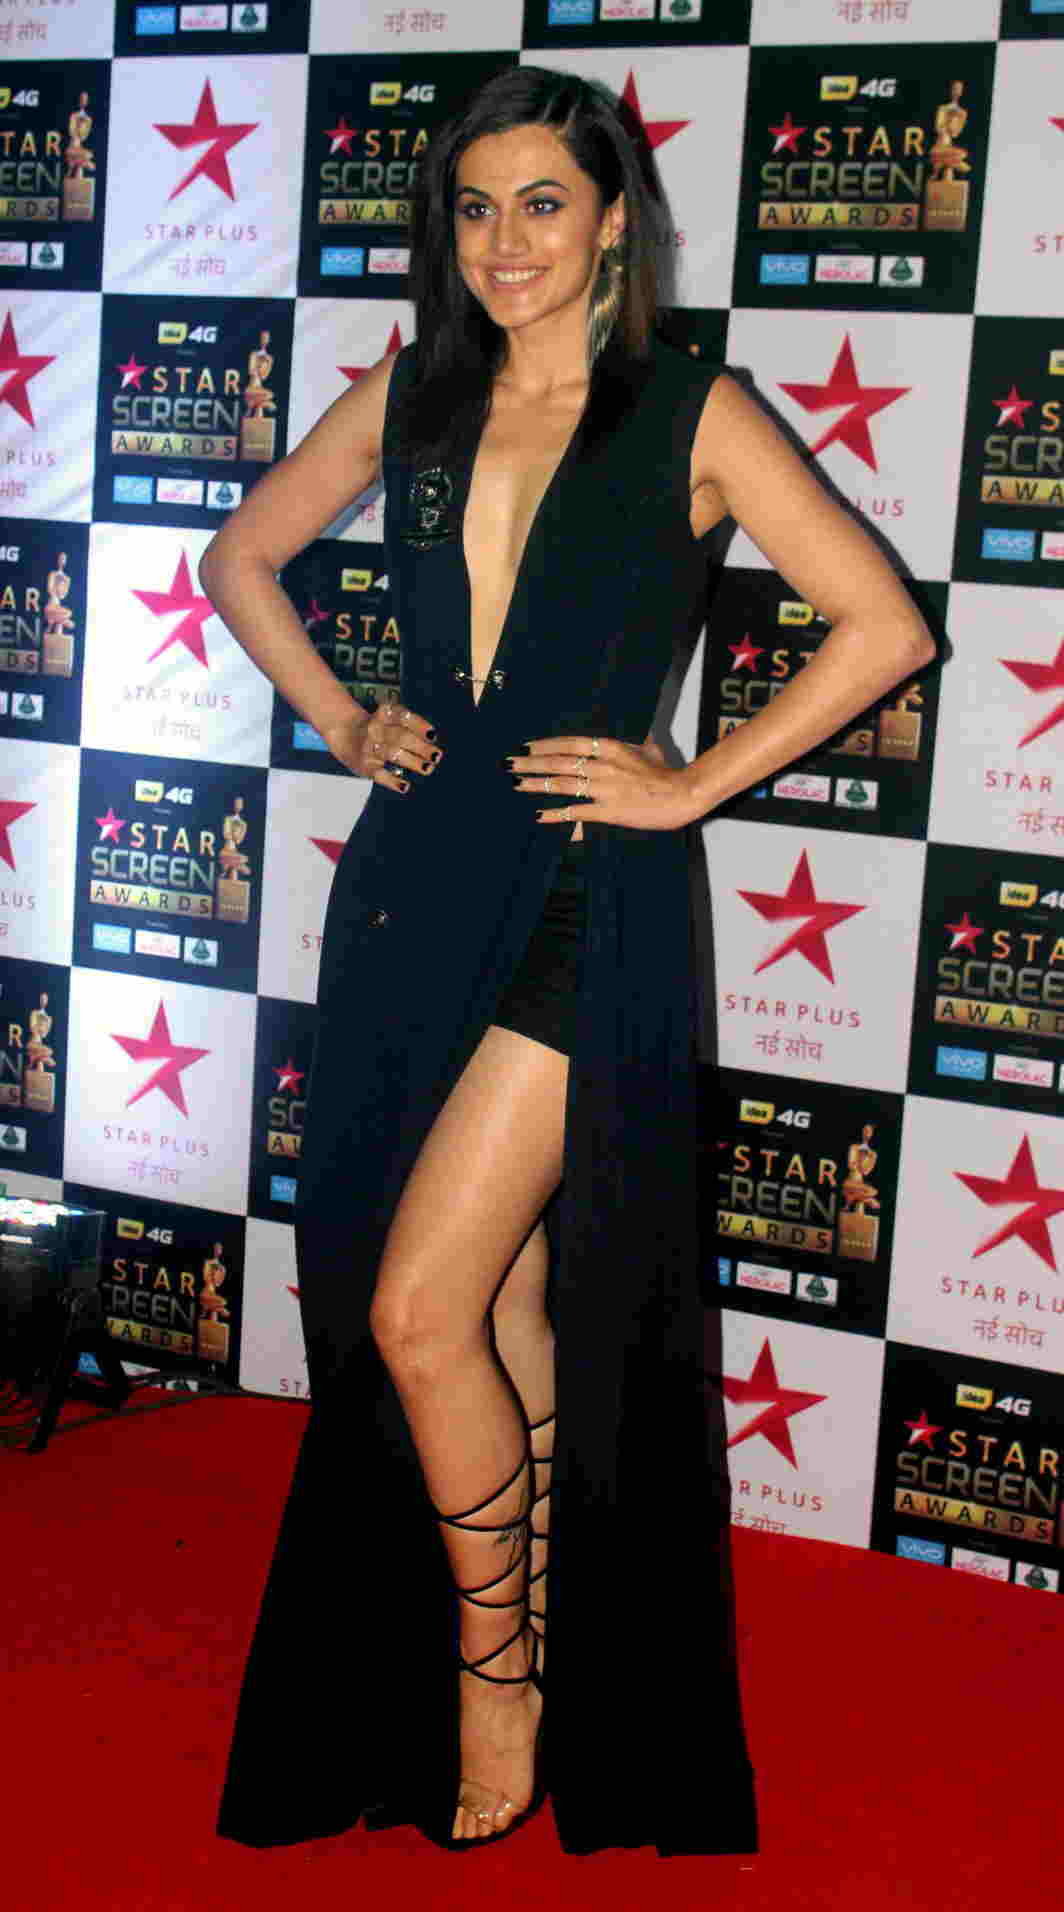 HELLO THERE: Bollywood actor Taapsee Pannu poses during the presentation of Star Screen Awards, in Mumbai, UNI